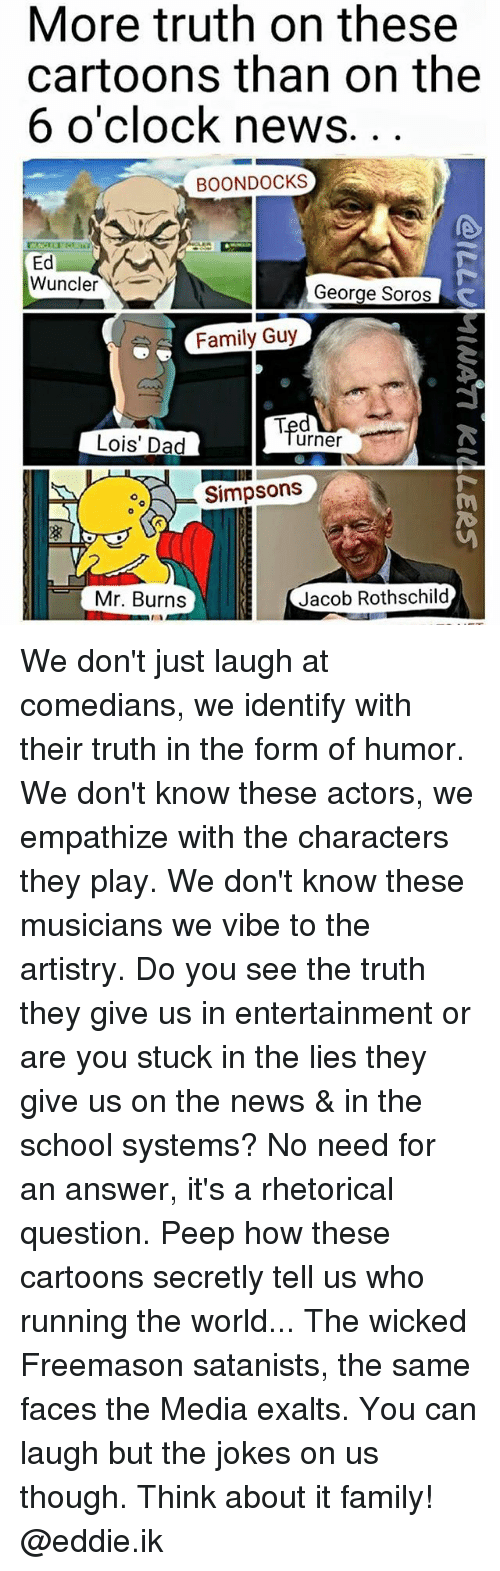 Jacob Rothschild: More truth on these  cartoons than on the  6 o'clock news  BOON DOCKS  Ed  Wuncler  George Soros  Family Guy  urner  Lois' Dad  Simpsons  Jacob Rothschild  Mr. Burns We don't just laugh at comedians, we identify with their truth in the form of humor. We don't know these actors, we empathize with the characters they play. We don't know these musicians we vibe to the artistry. Do you see the truth they give us in entertainment or are you stuck in the lies they give us on the news & in the school systems? No need for an answer, it's a rhetorical question. Peep how these cartoons secretly tell us who running the world... The wicked Freemason satanists, the same faces the Media exalts. You can laugh but the jokes on us though. Think about it family! @eddie.ik